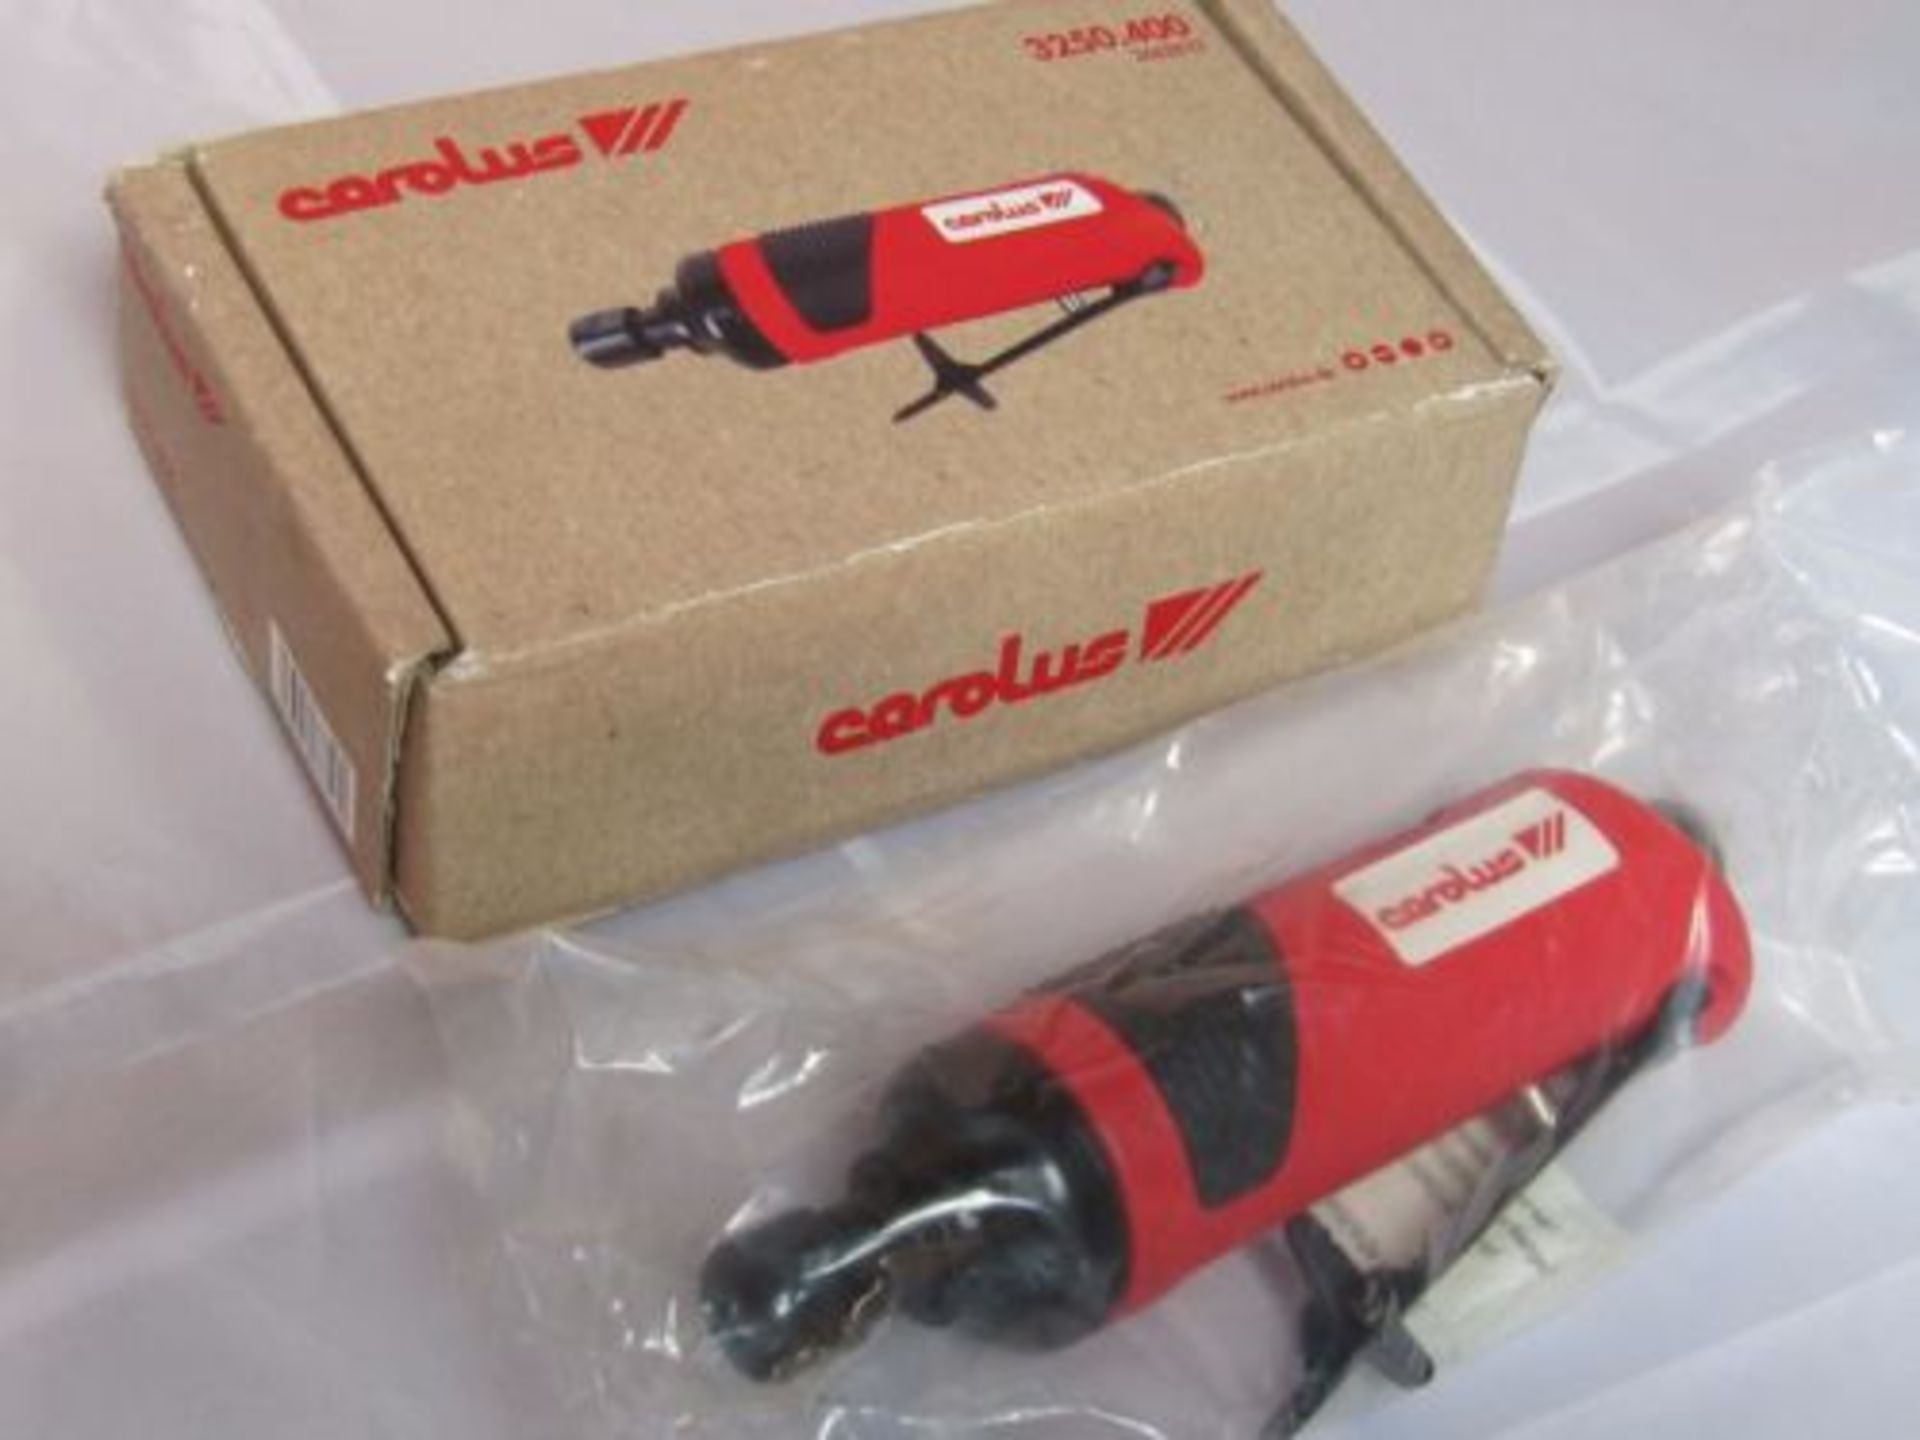 Lot 23 - Carolus Air Grinder. 3250.400 no vat on hammer.You will get 1 of these.Brand new and unused.